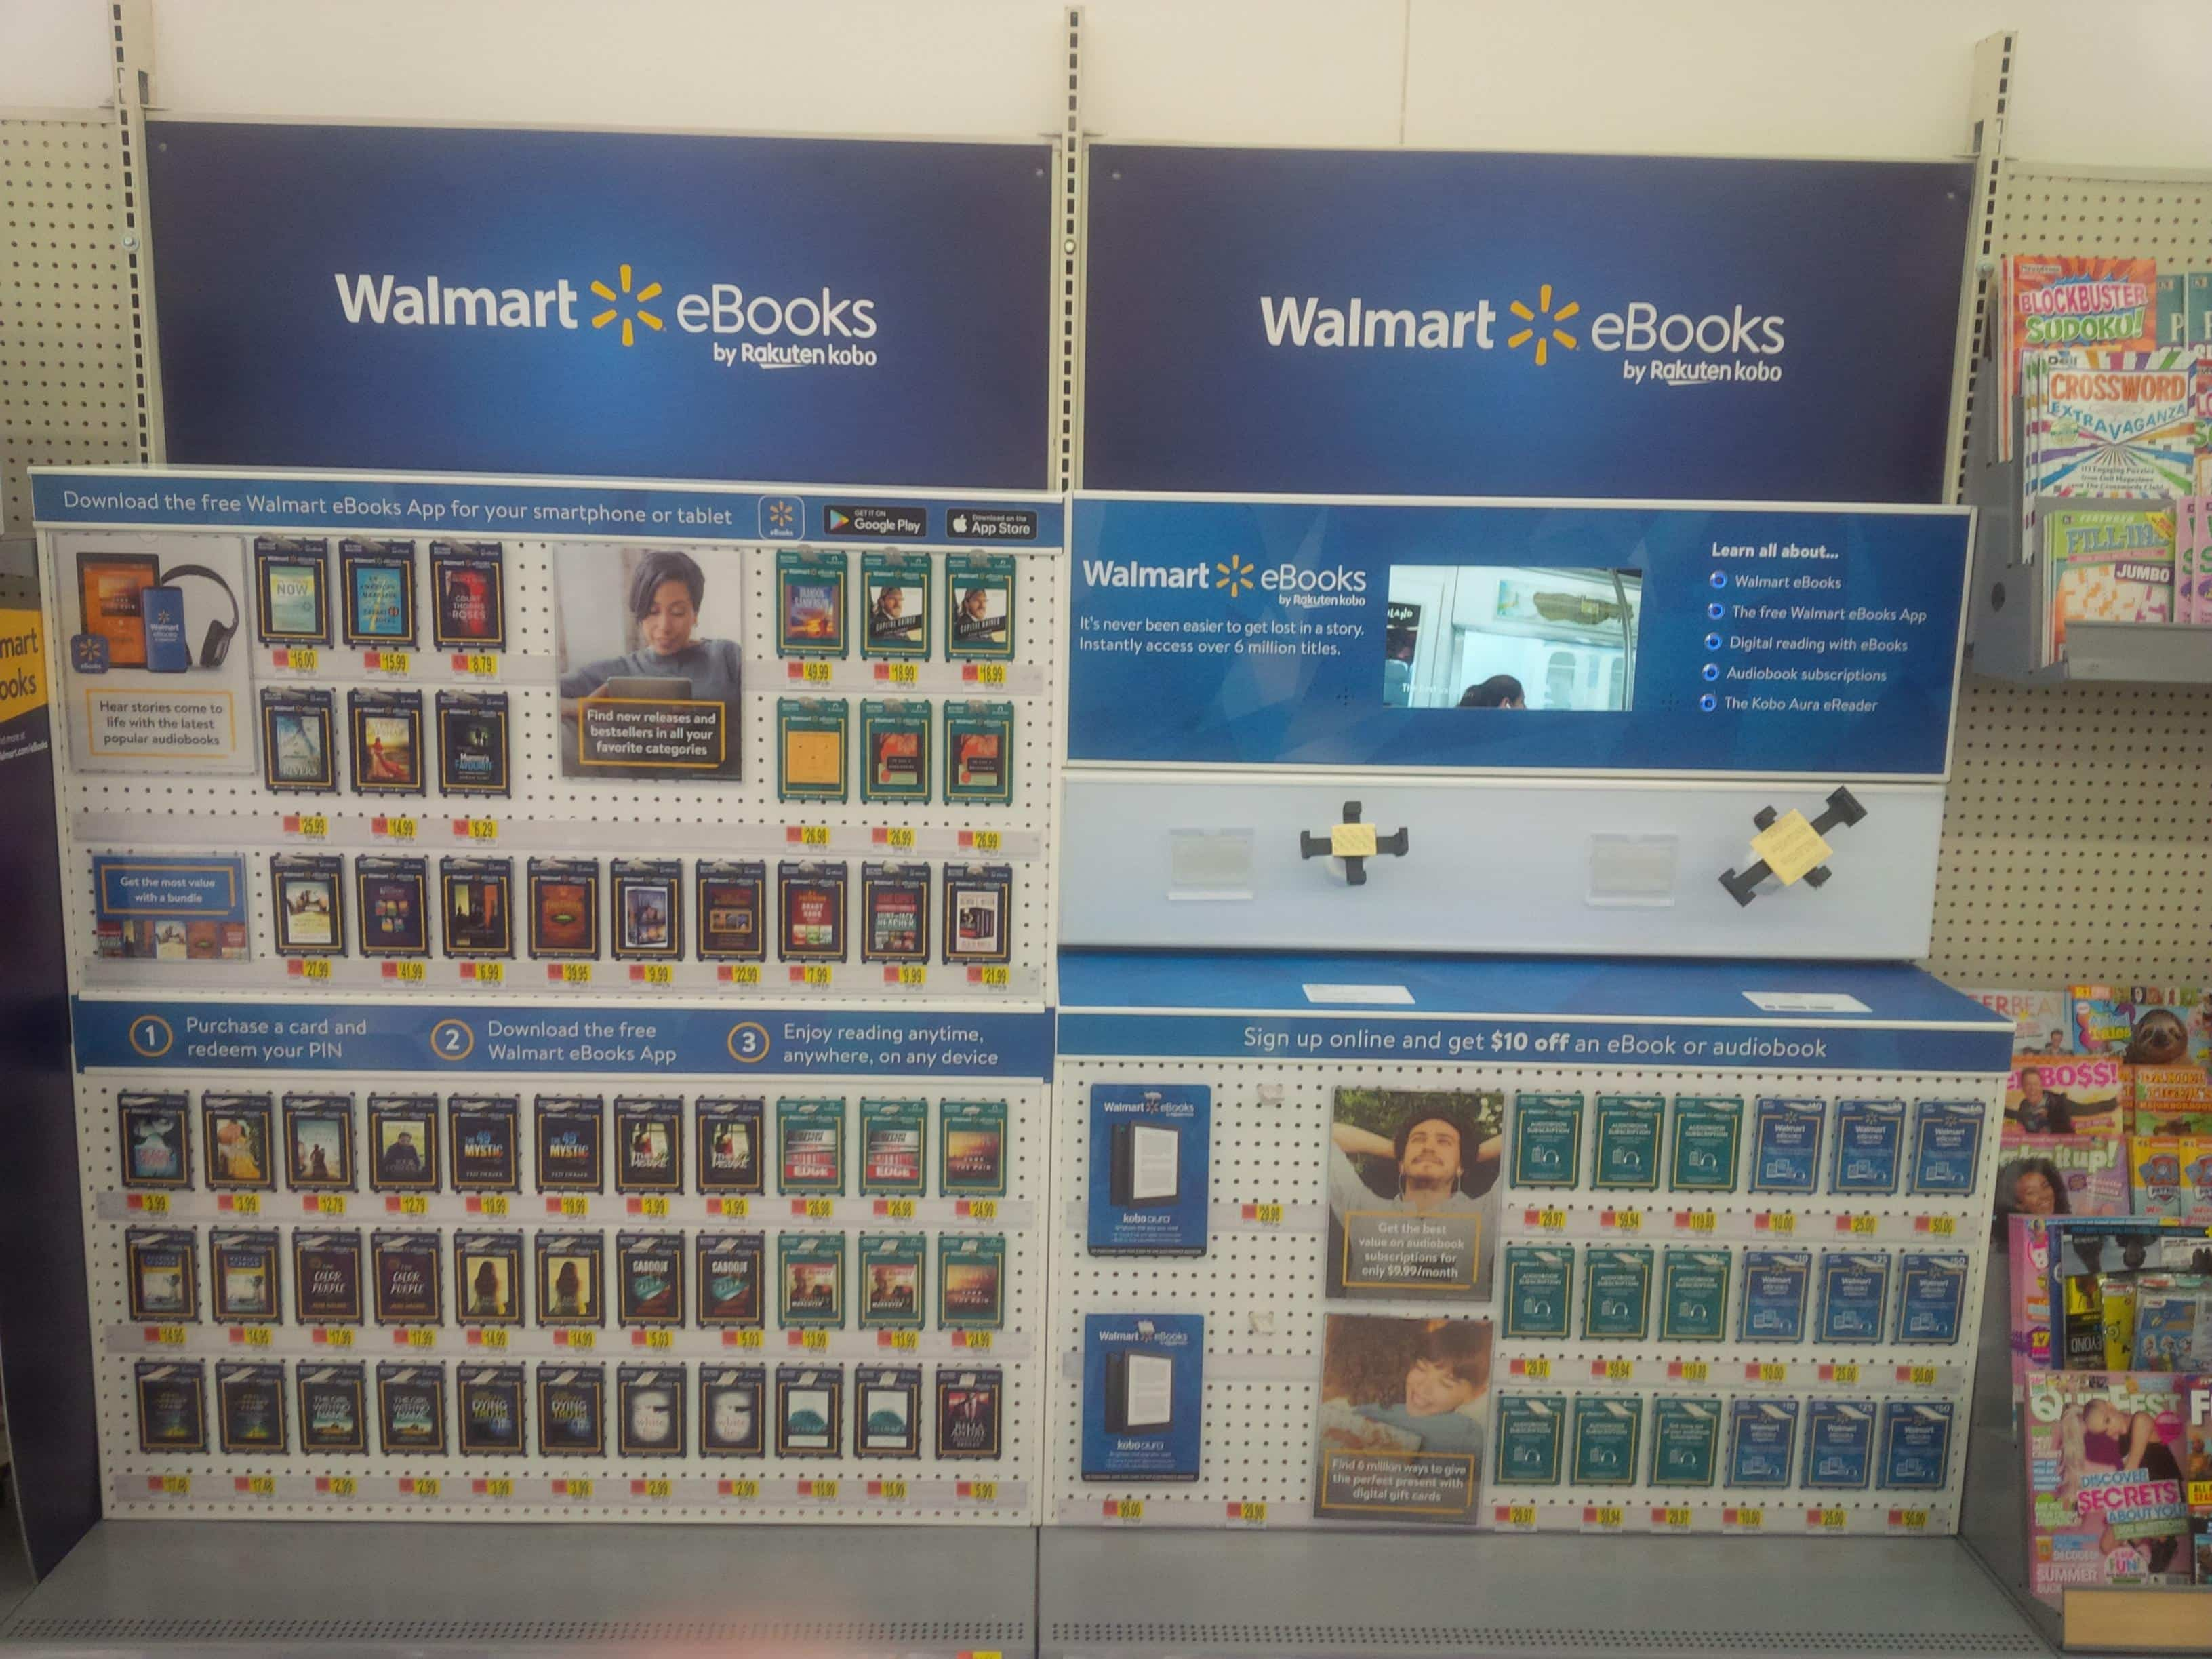 Walmart's eBookstore is Launching Today | The Digital Reader